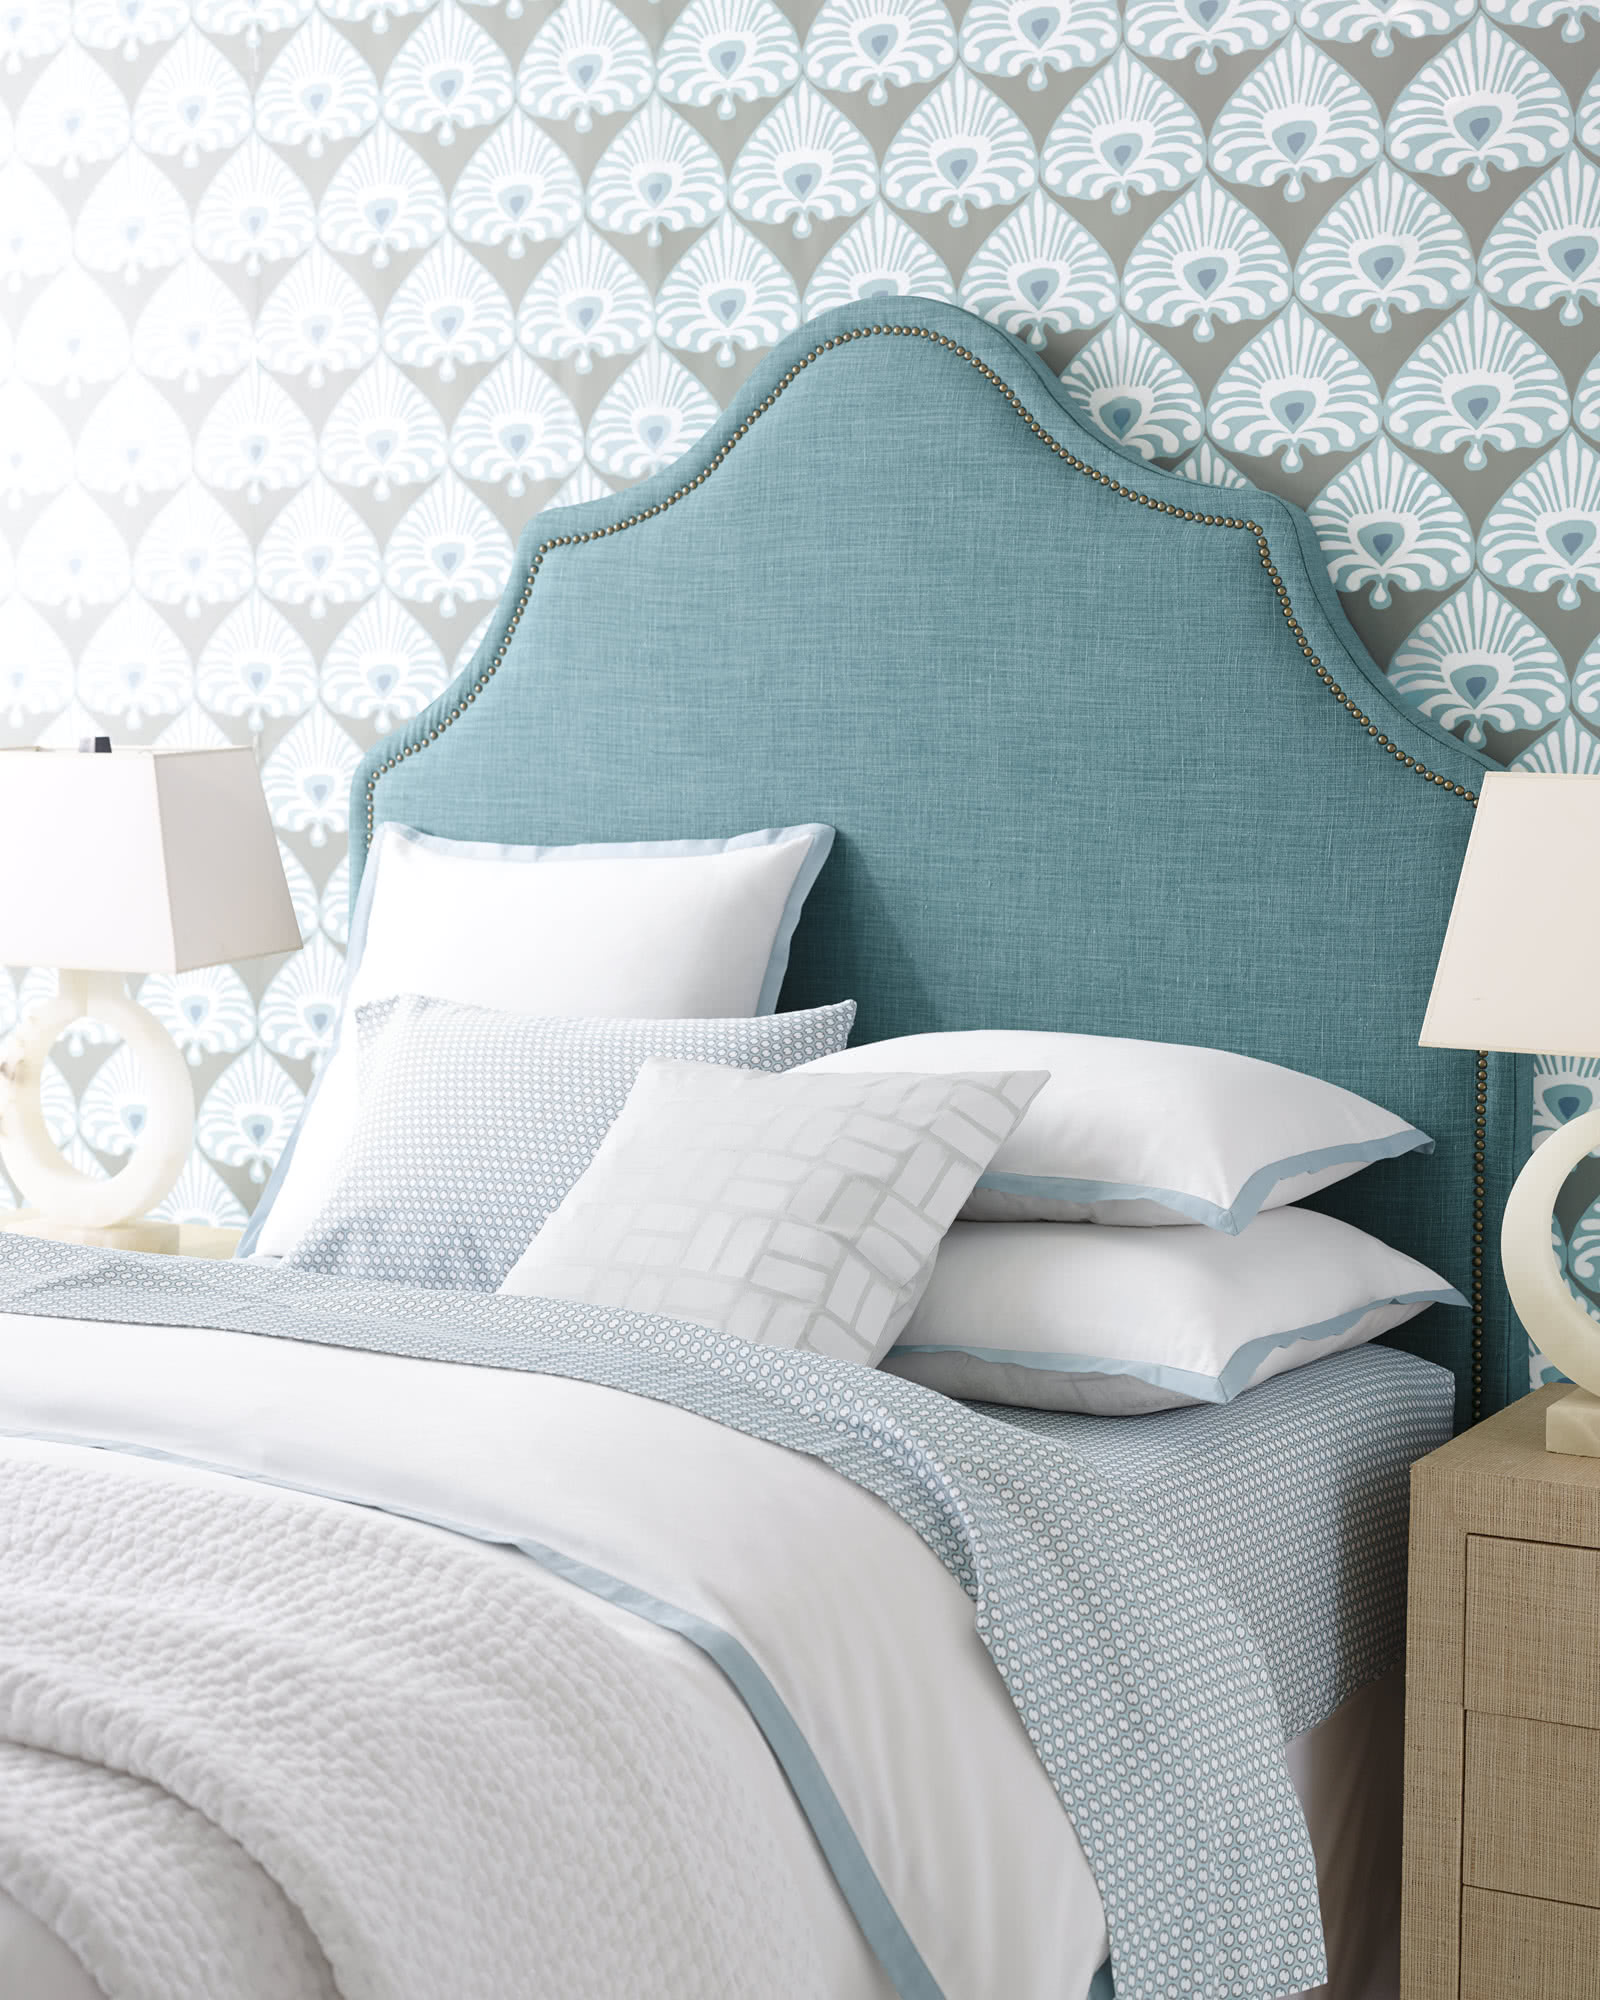 Navy Grey Bedroom Ideas Border Frame Duvet Cover - Serena & Lily Site